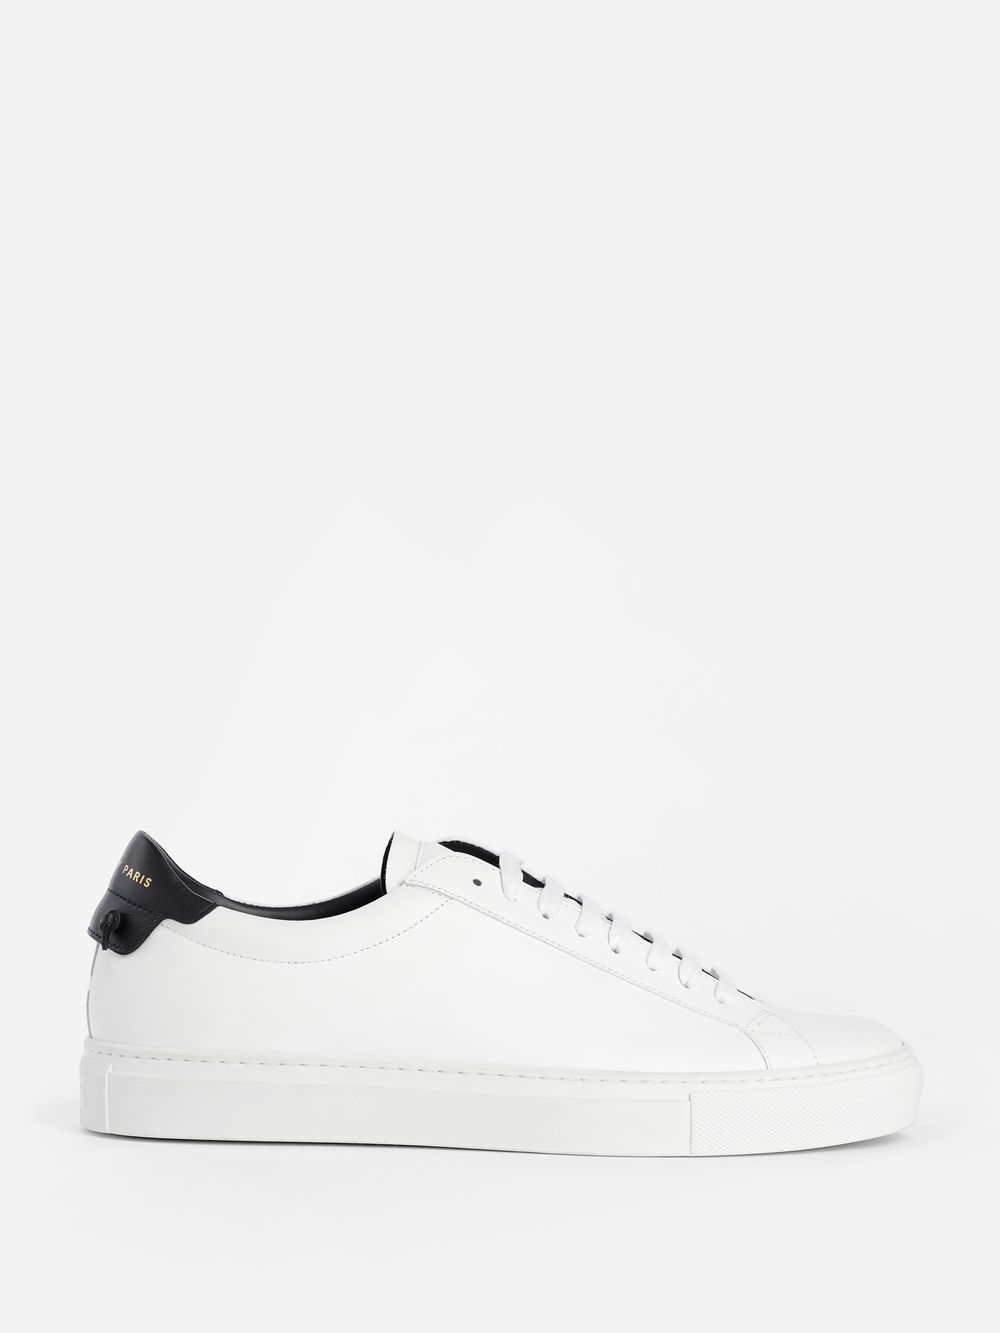 GIVENCHY GIVENCHY SNEAKERS. #givenchy #shoes | Stuff to buy